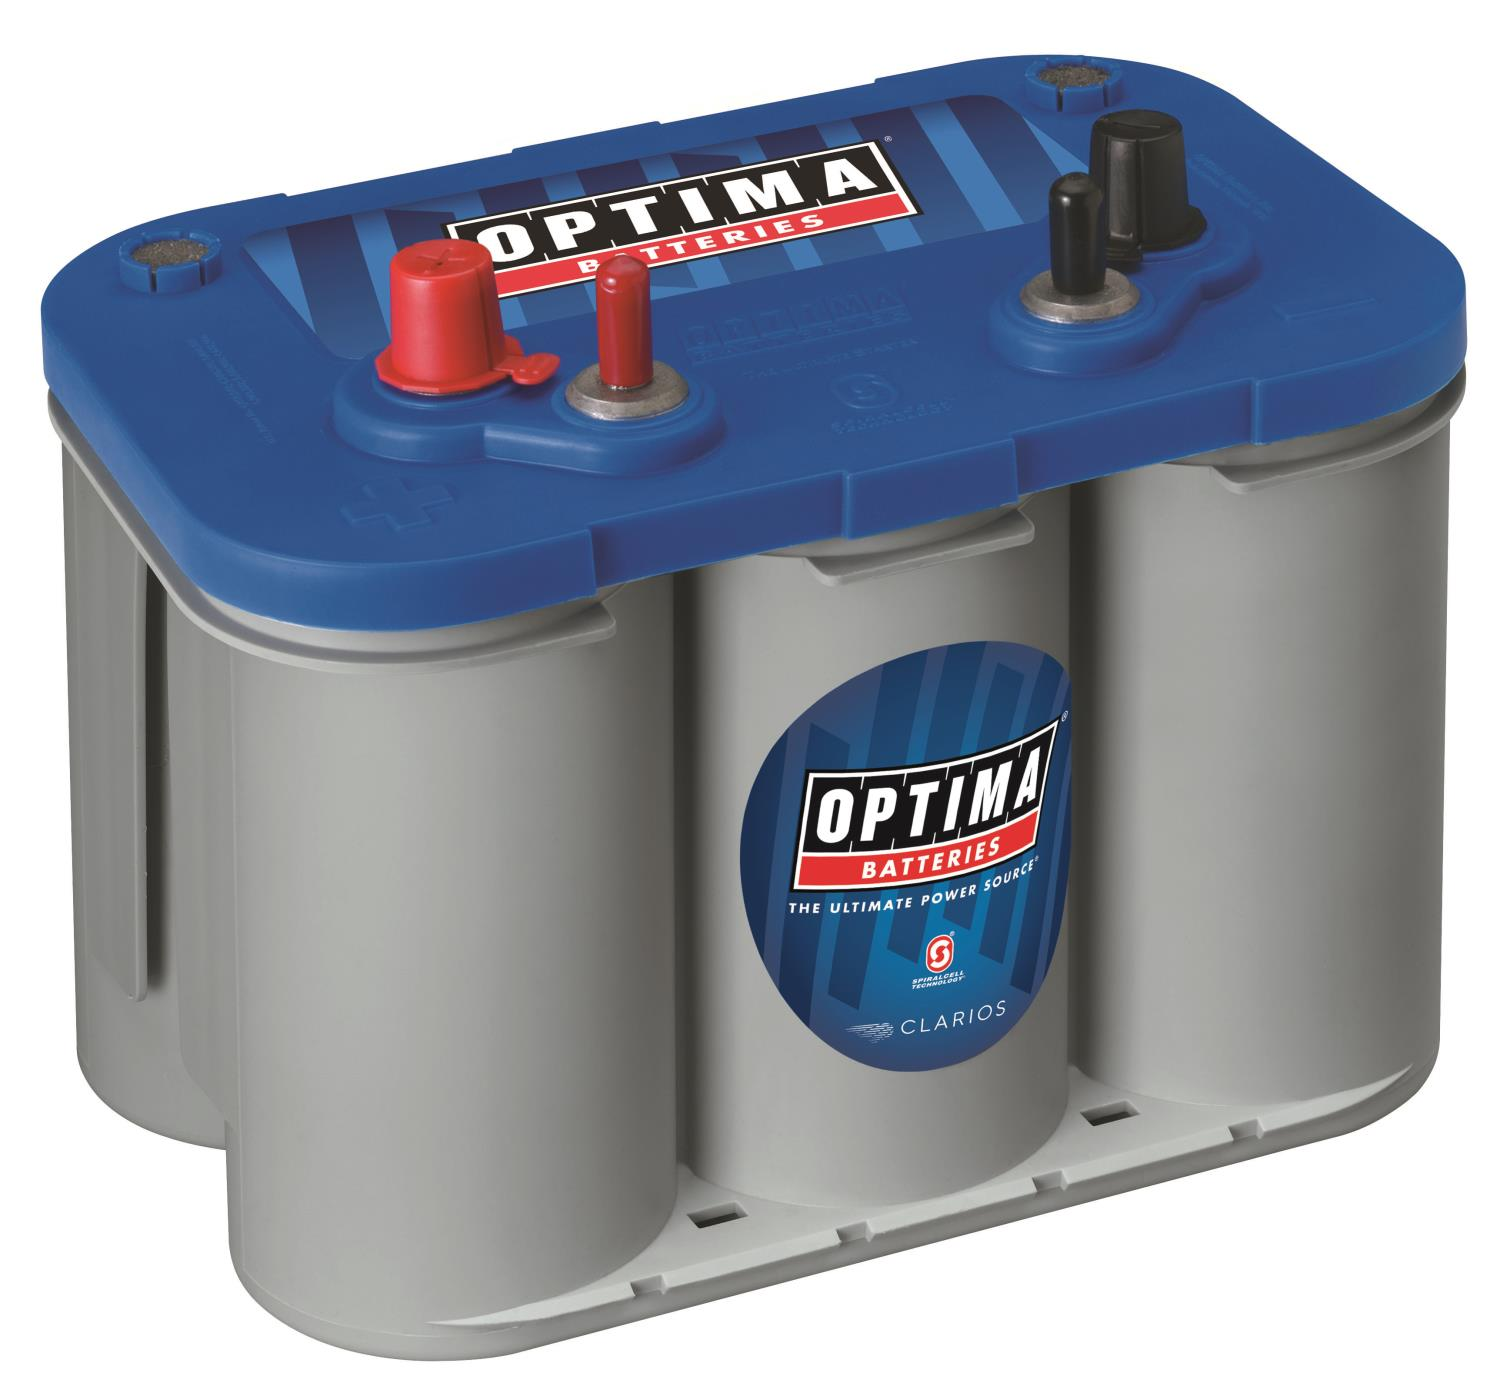 Optima Batteries 9016-103